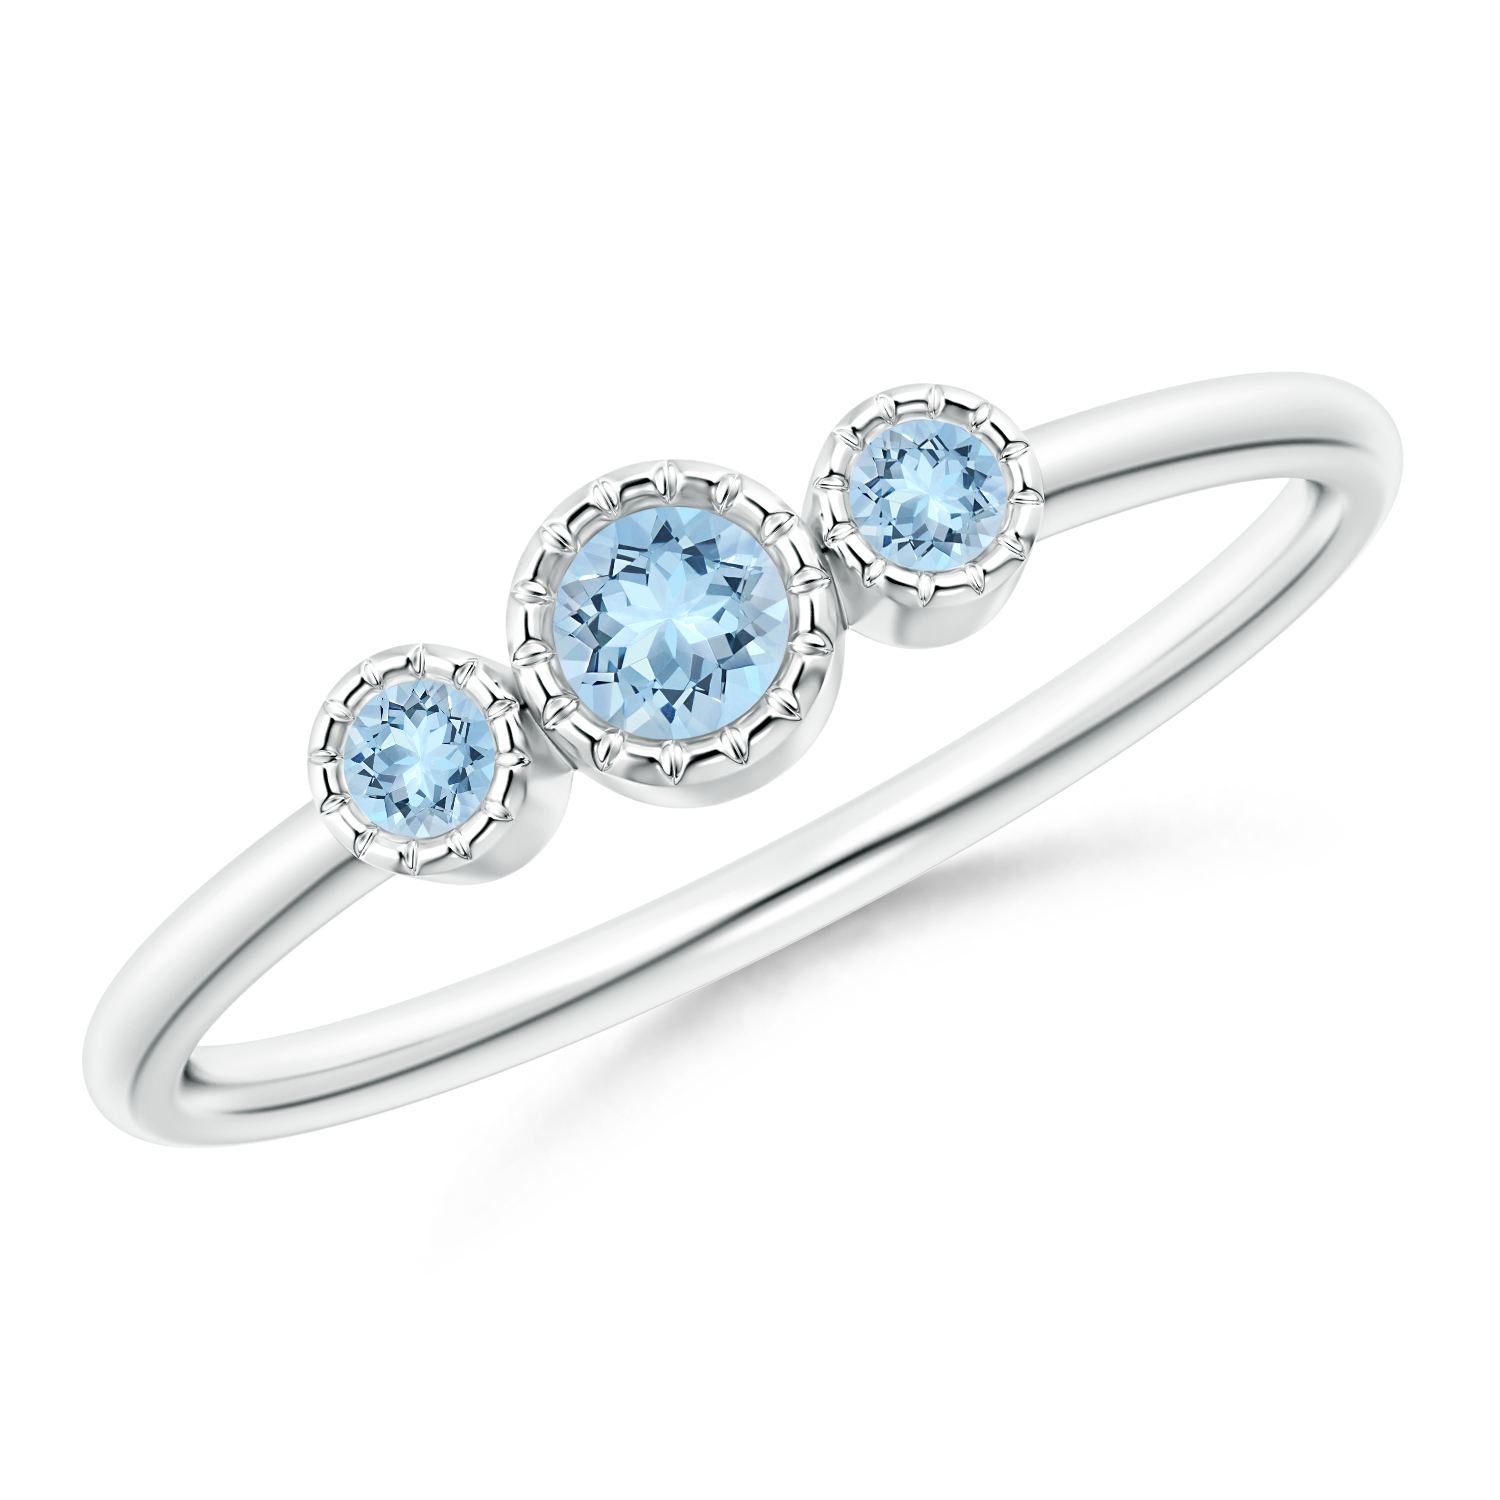 Bezel Set Round Aquamarine Three Stone Ring - Angara.com